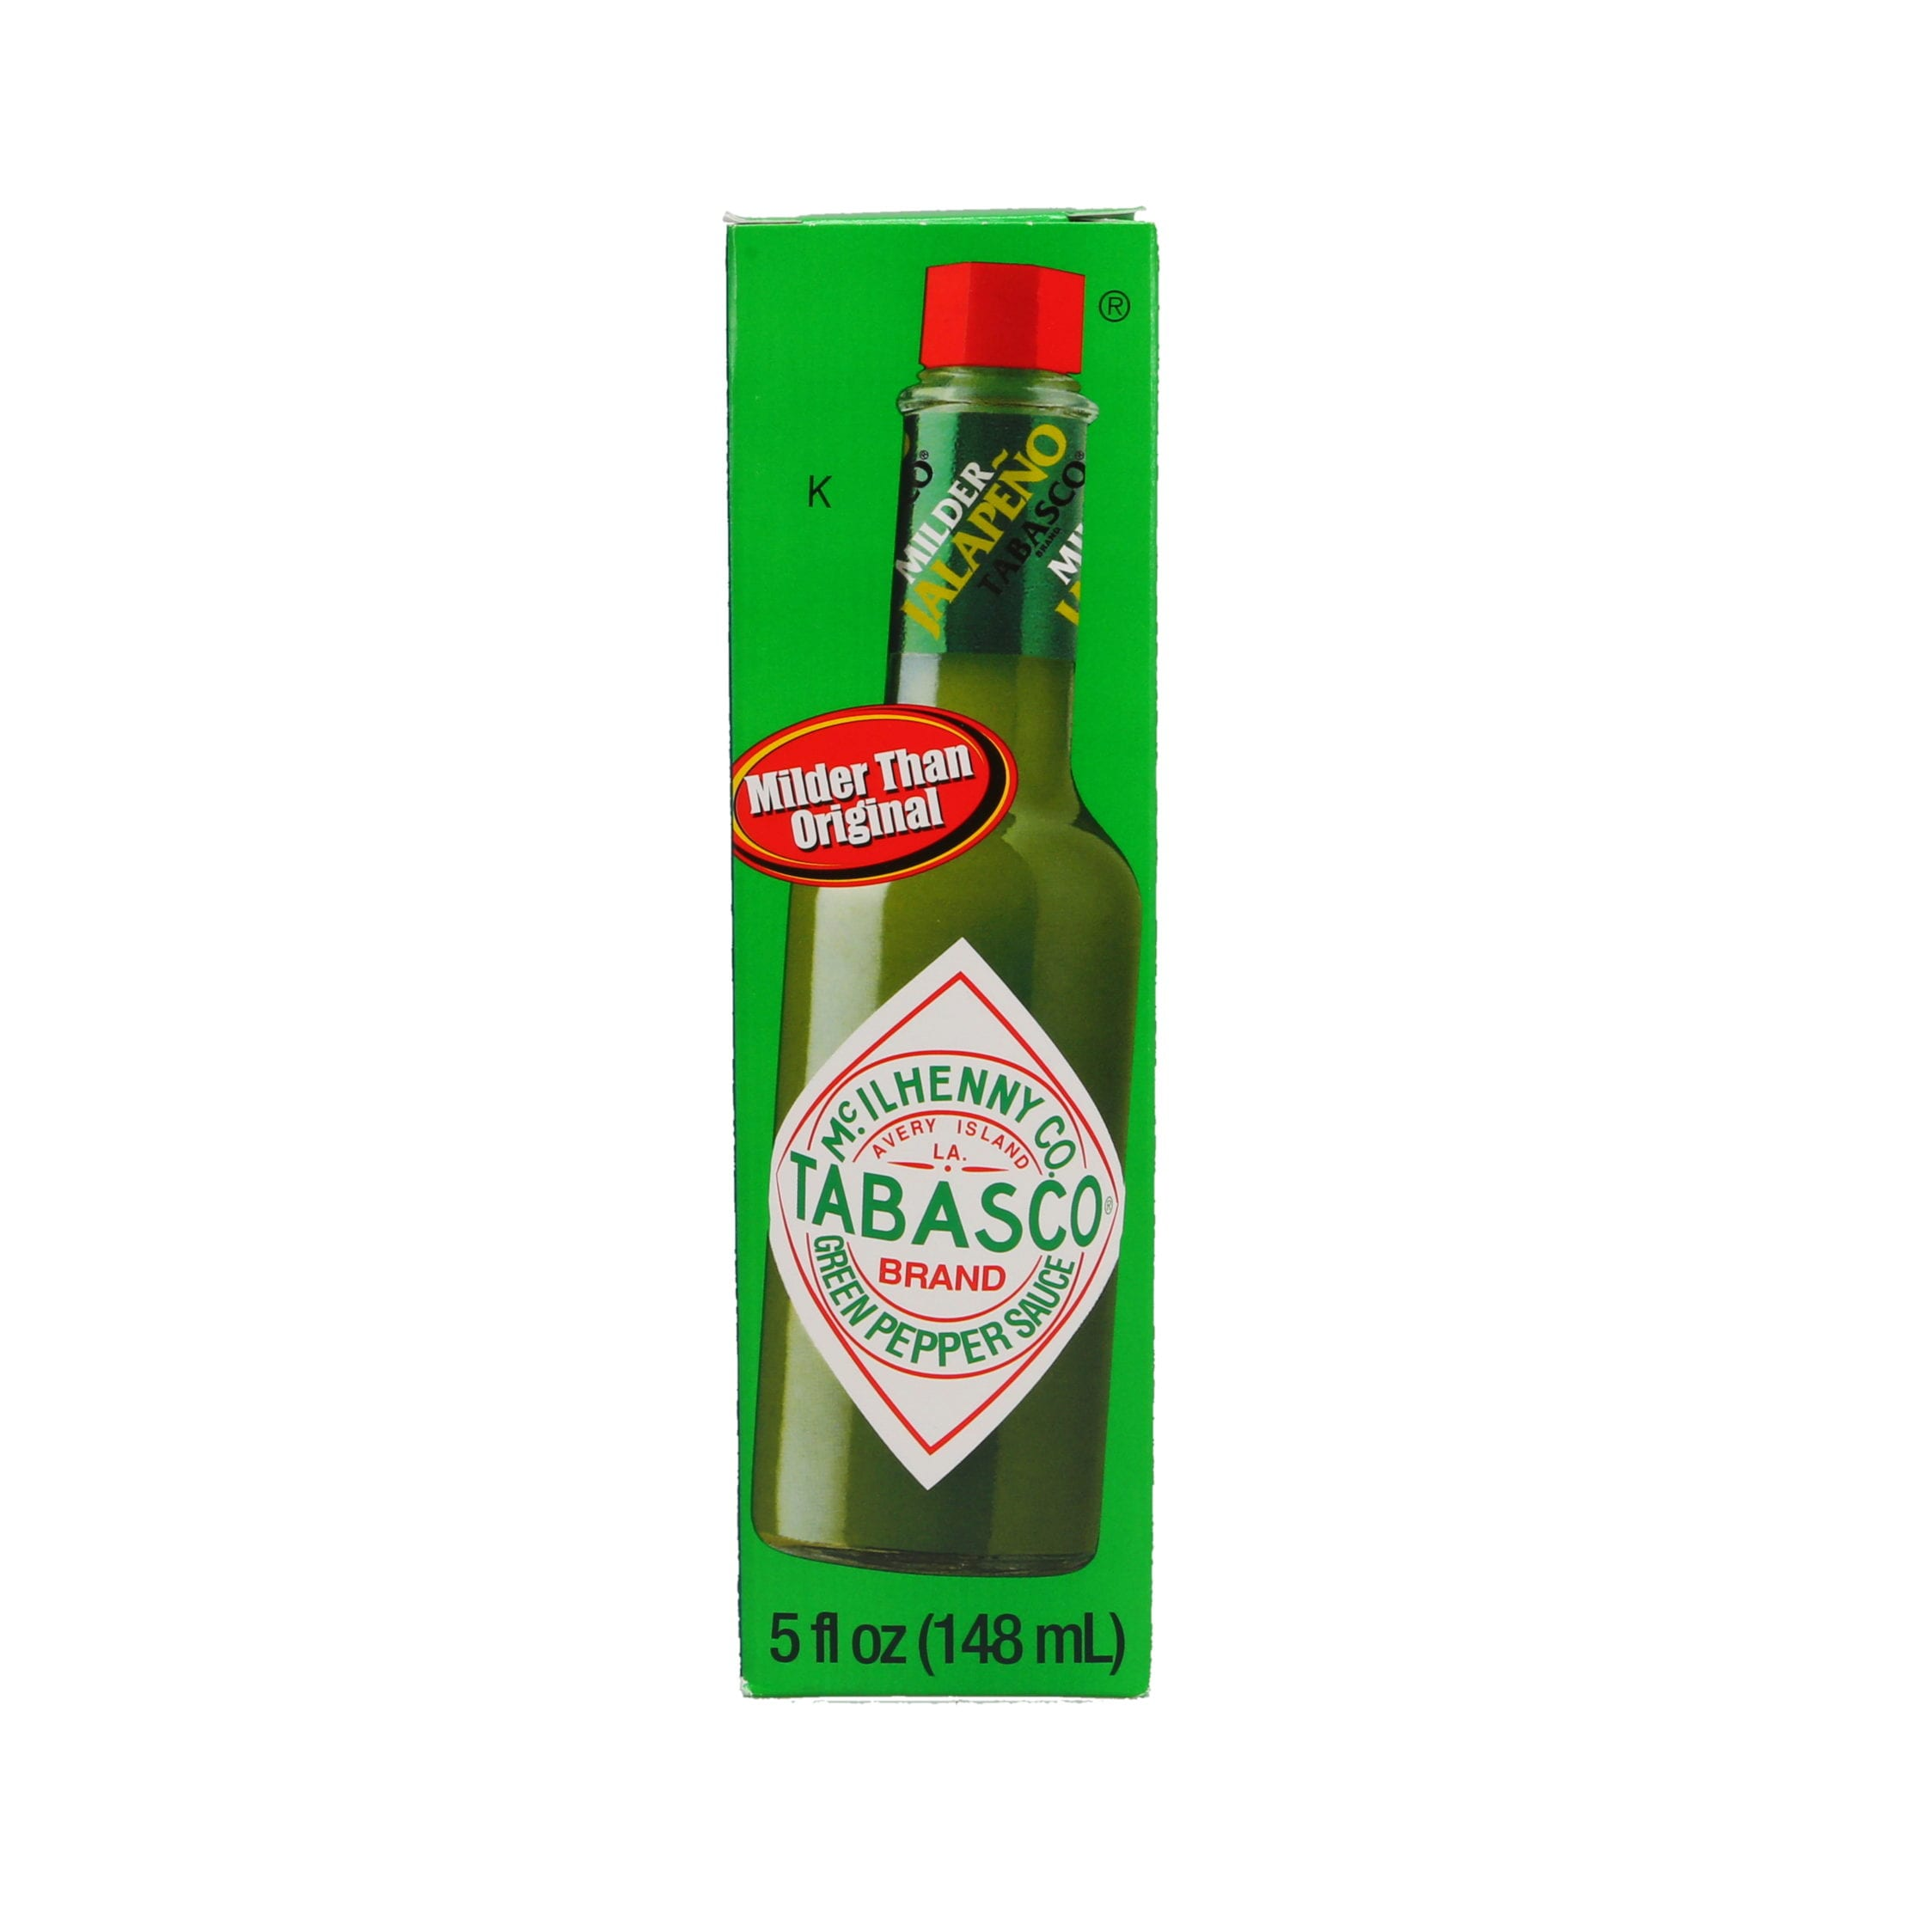 Ortery photography example grocery industry green tobasco on pure white